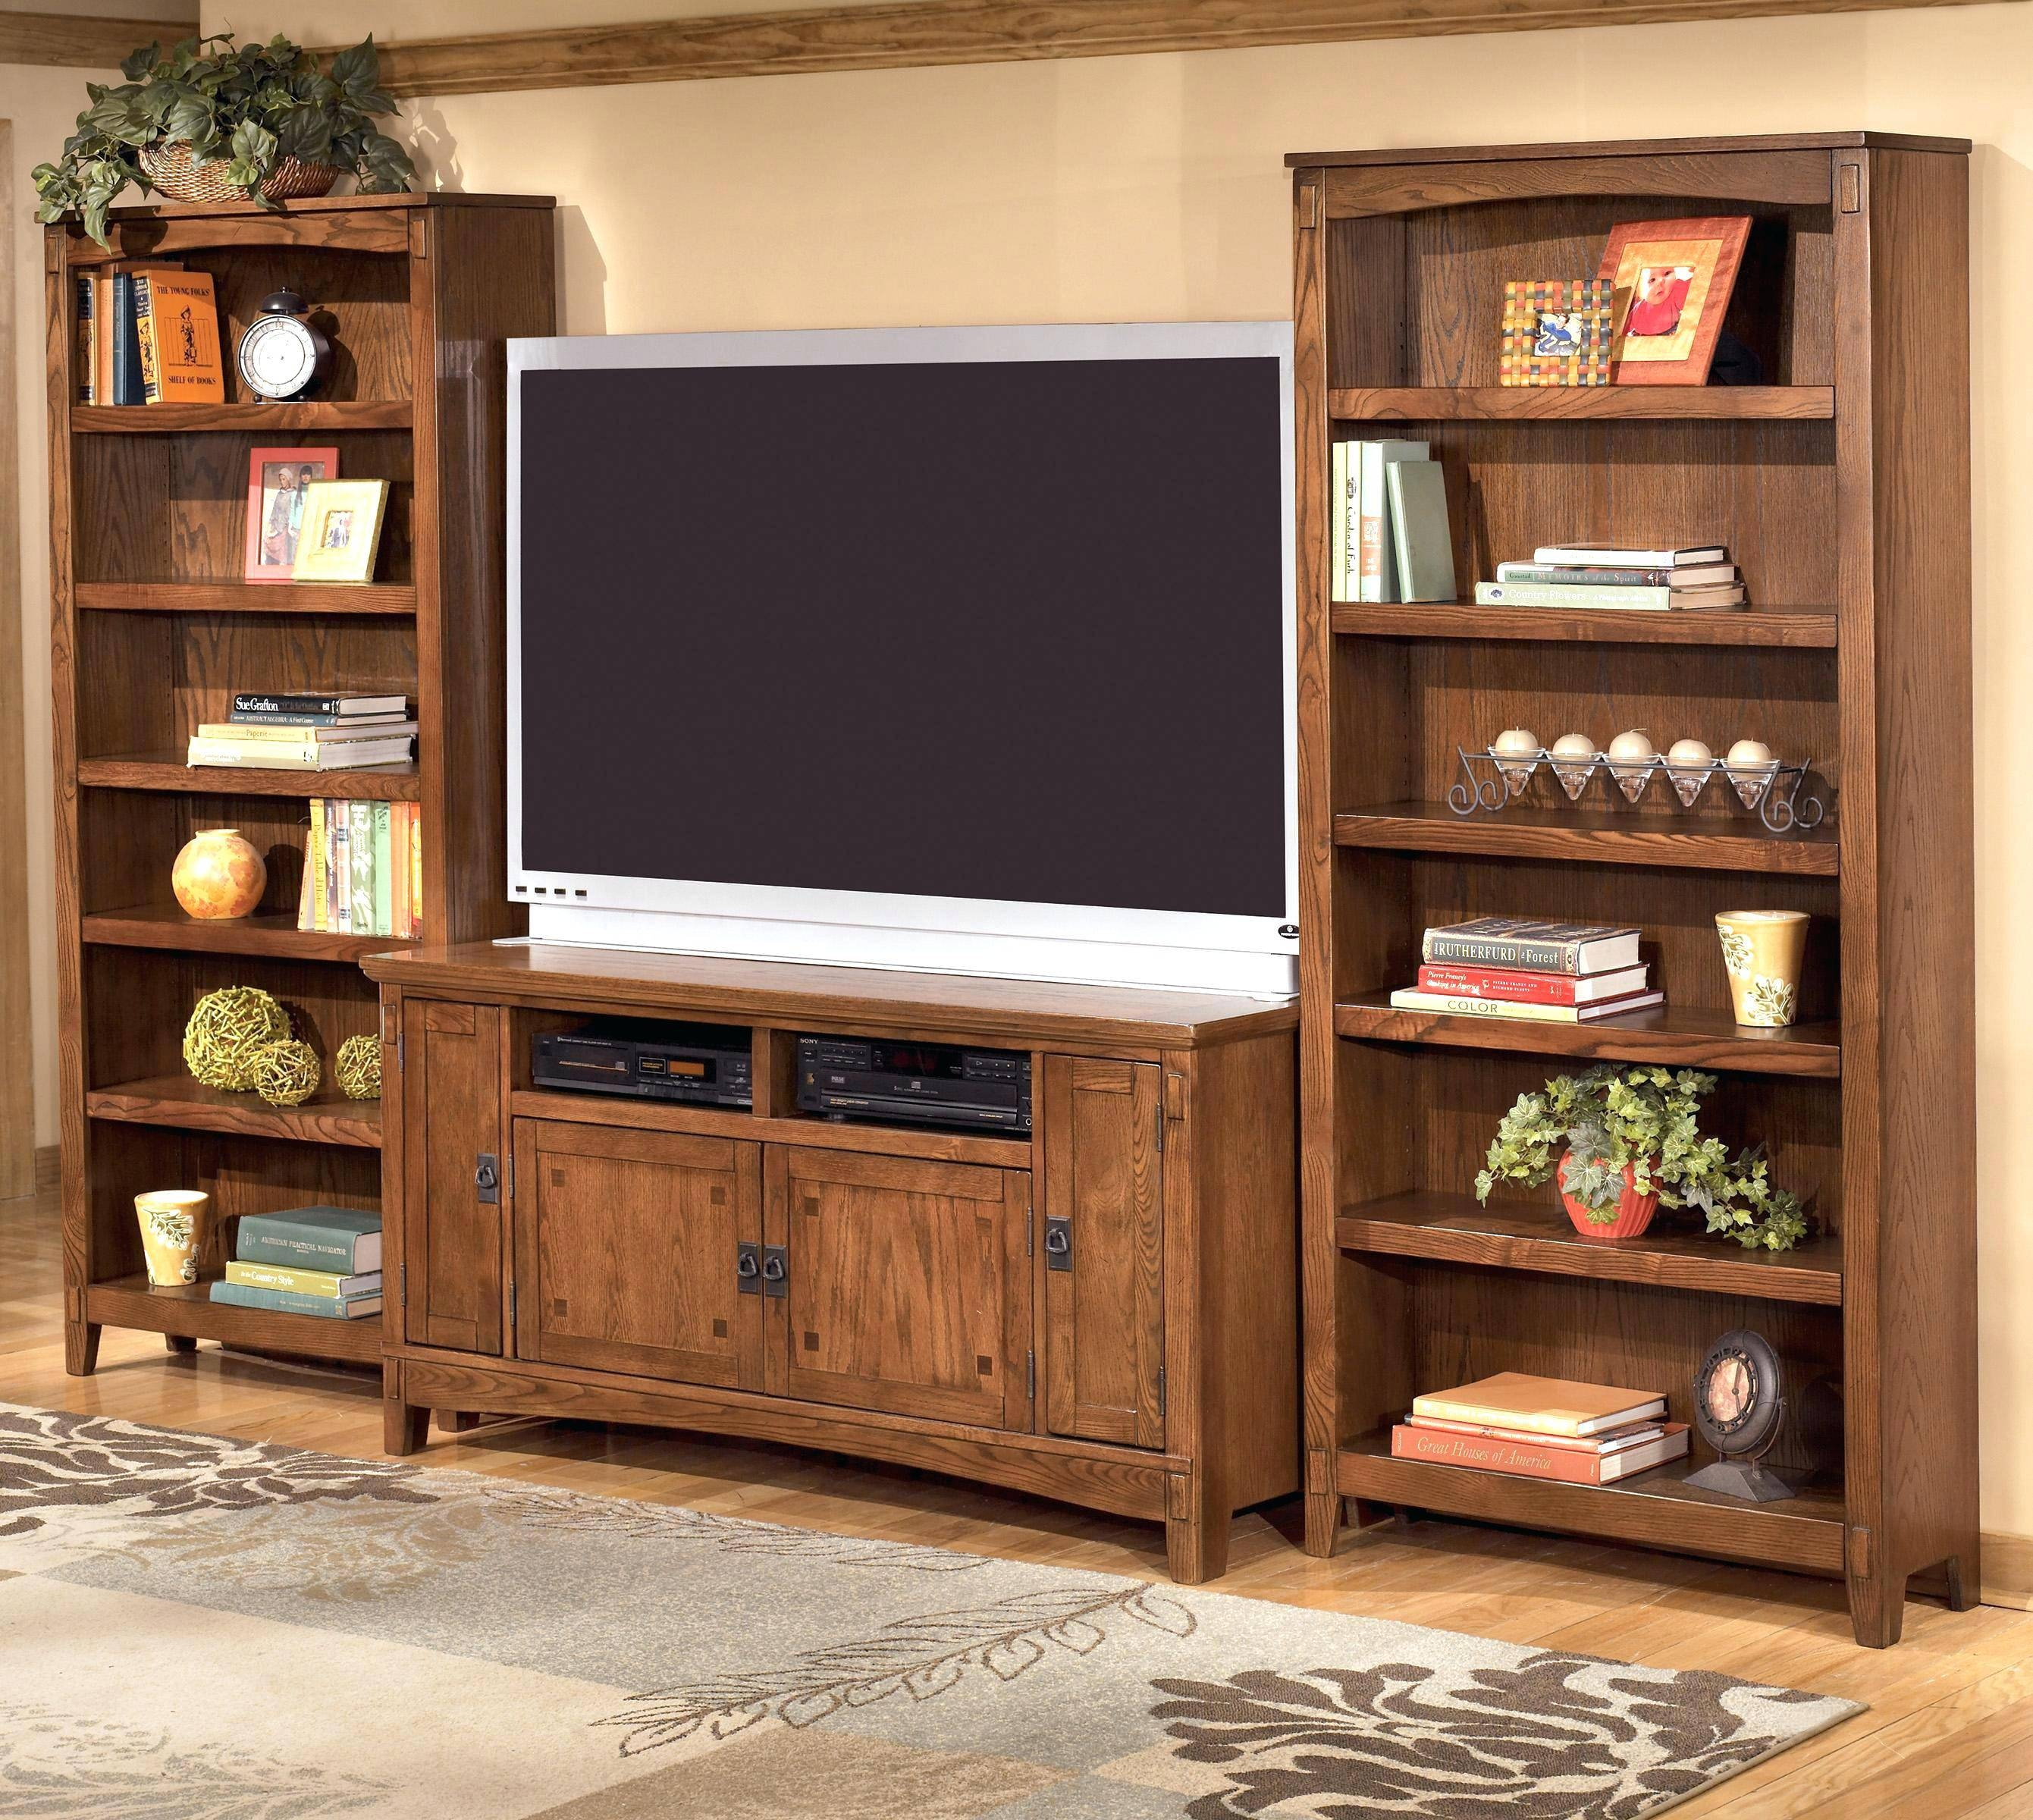 Bookcase: Tv Unit Bookcase For Home Storages. Tv Unit With in Tv Stands Bookshelf Combo (Image 1 of 15)